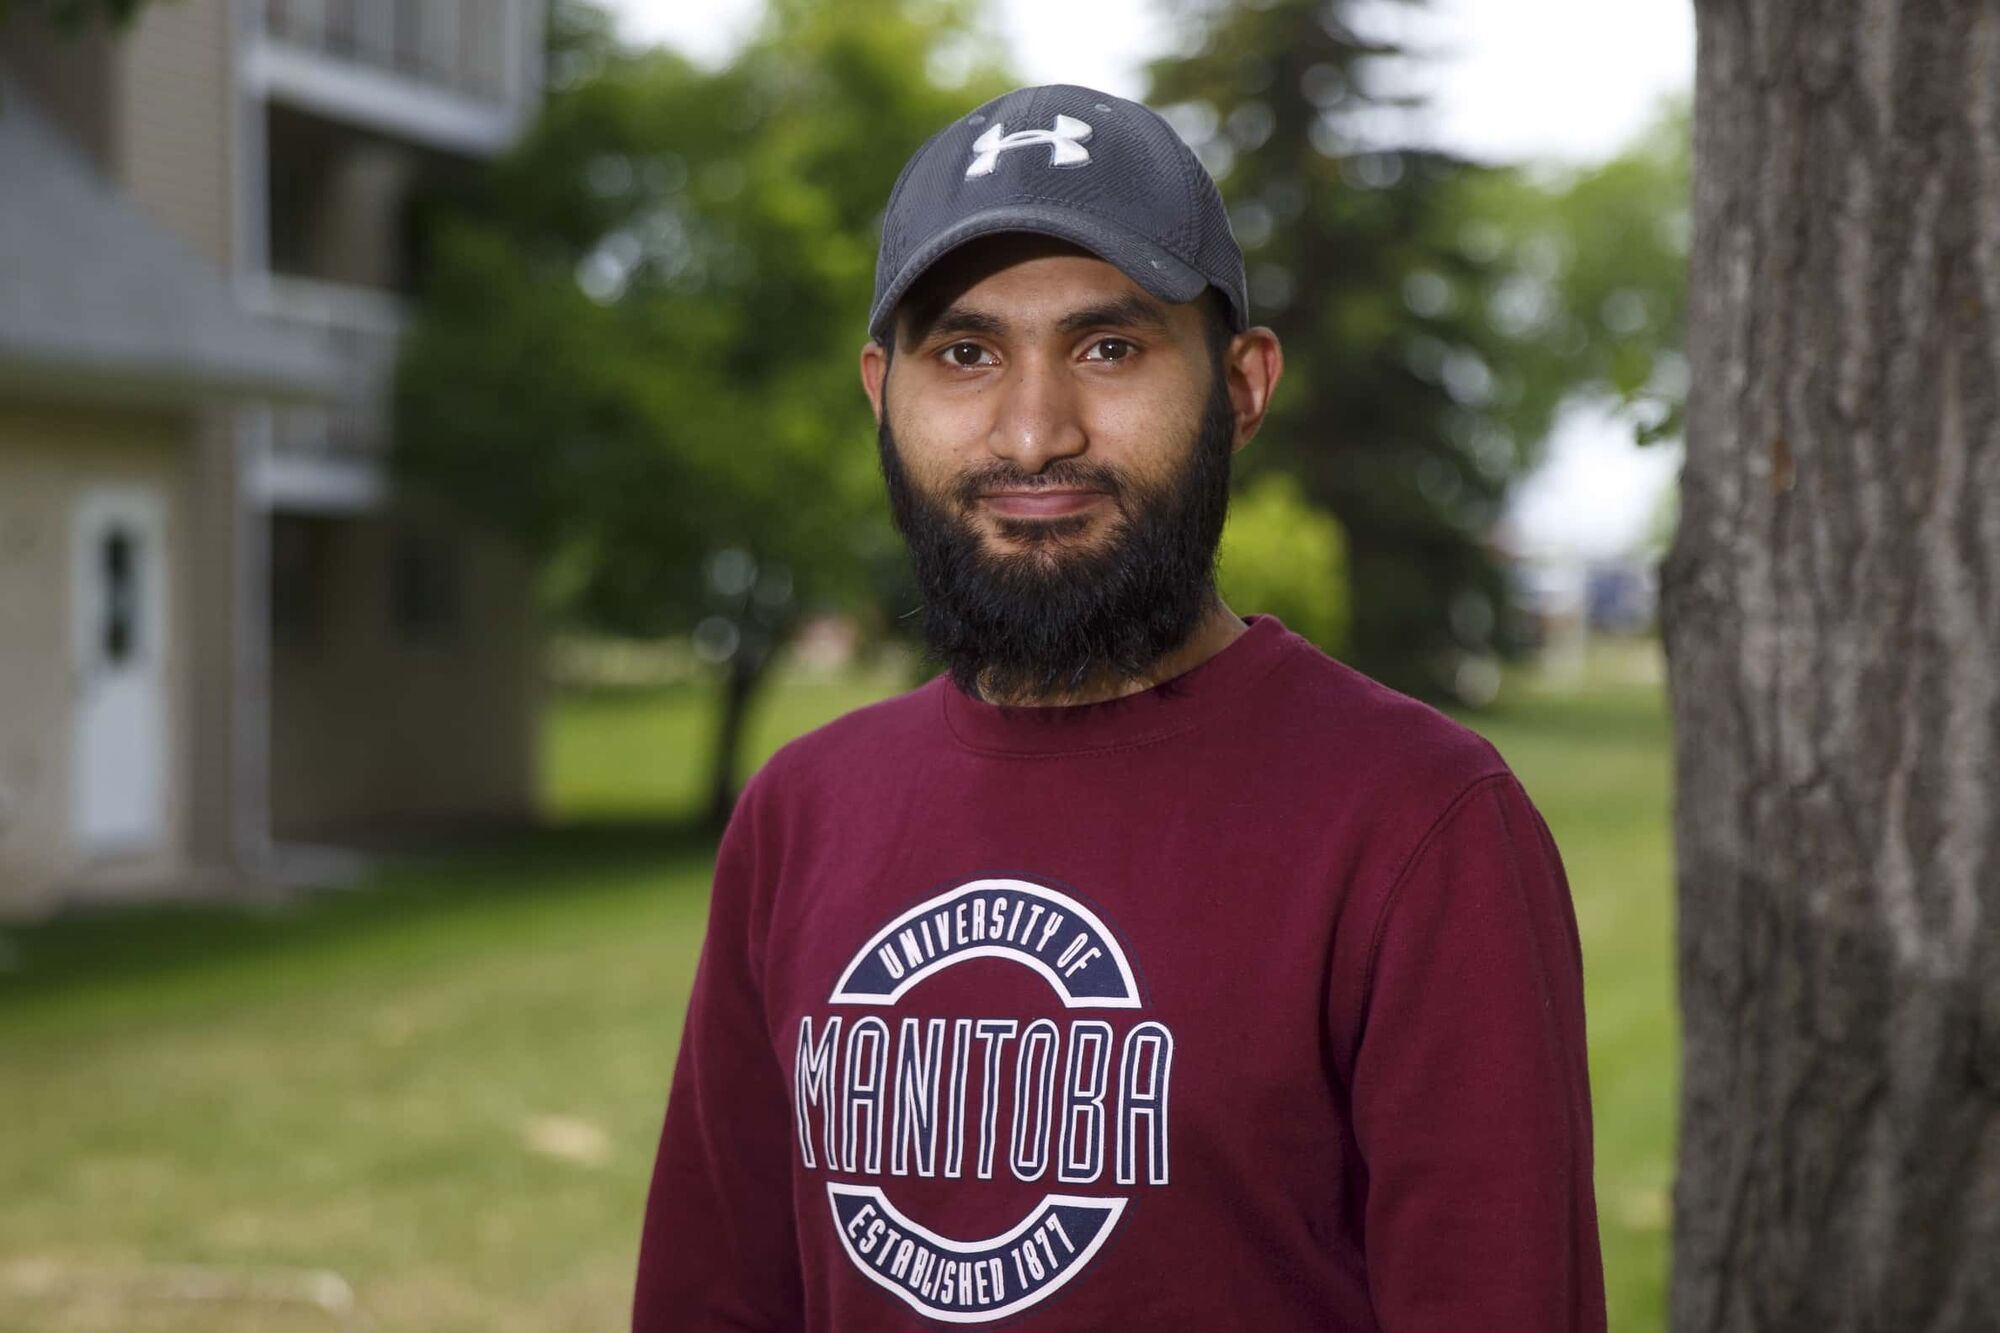 Abdul Ahad, president of the University of Manitoba Muslim students' association. Muslims in Winnipeg say more needs to be done to combat home-grown Islamophobia. (Mike Deal / Winnipeg Free Press)